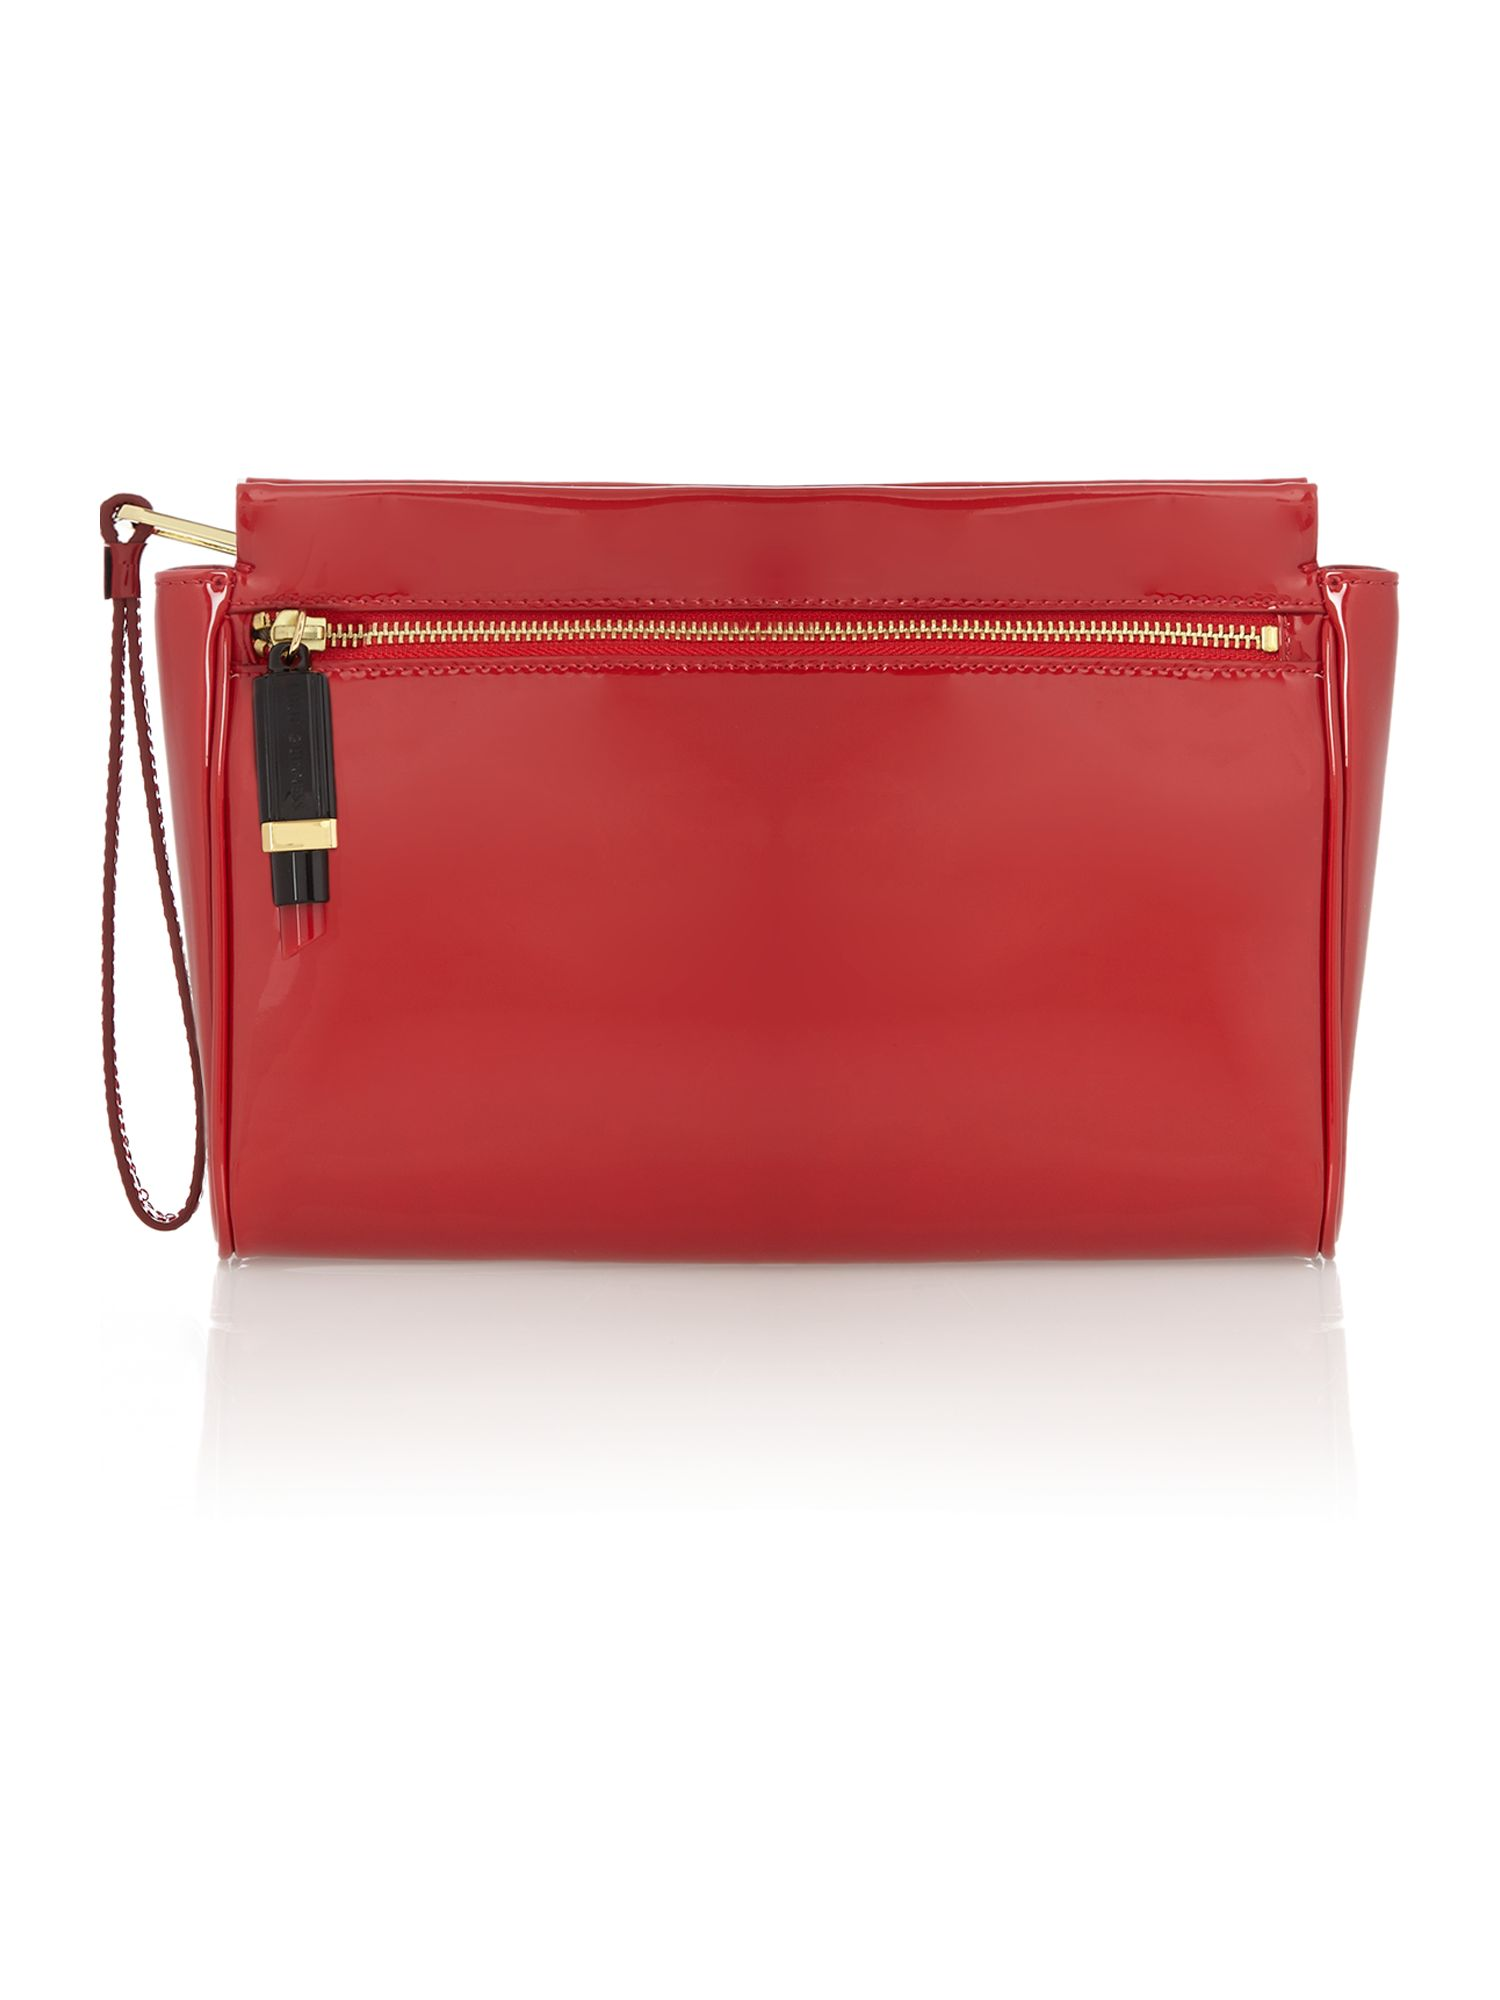 Katie patent red clutch bag